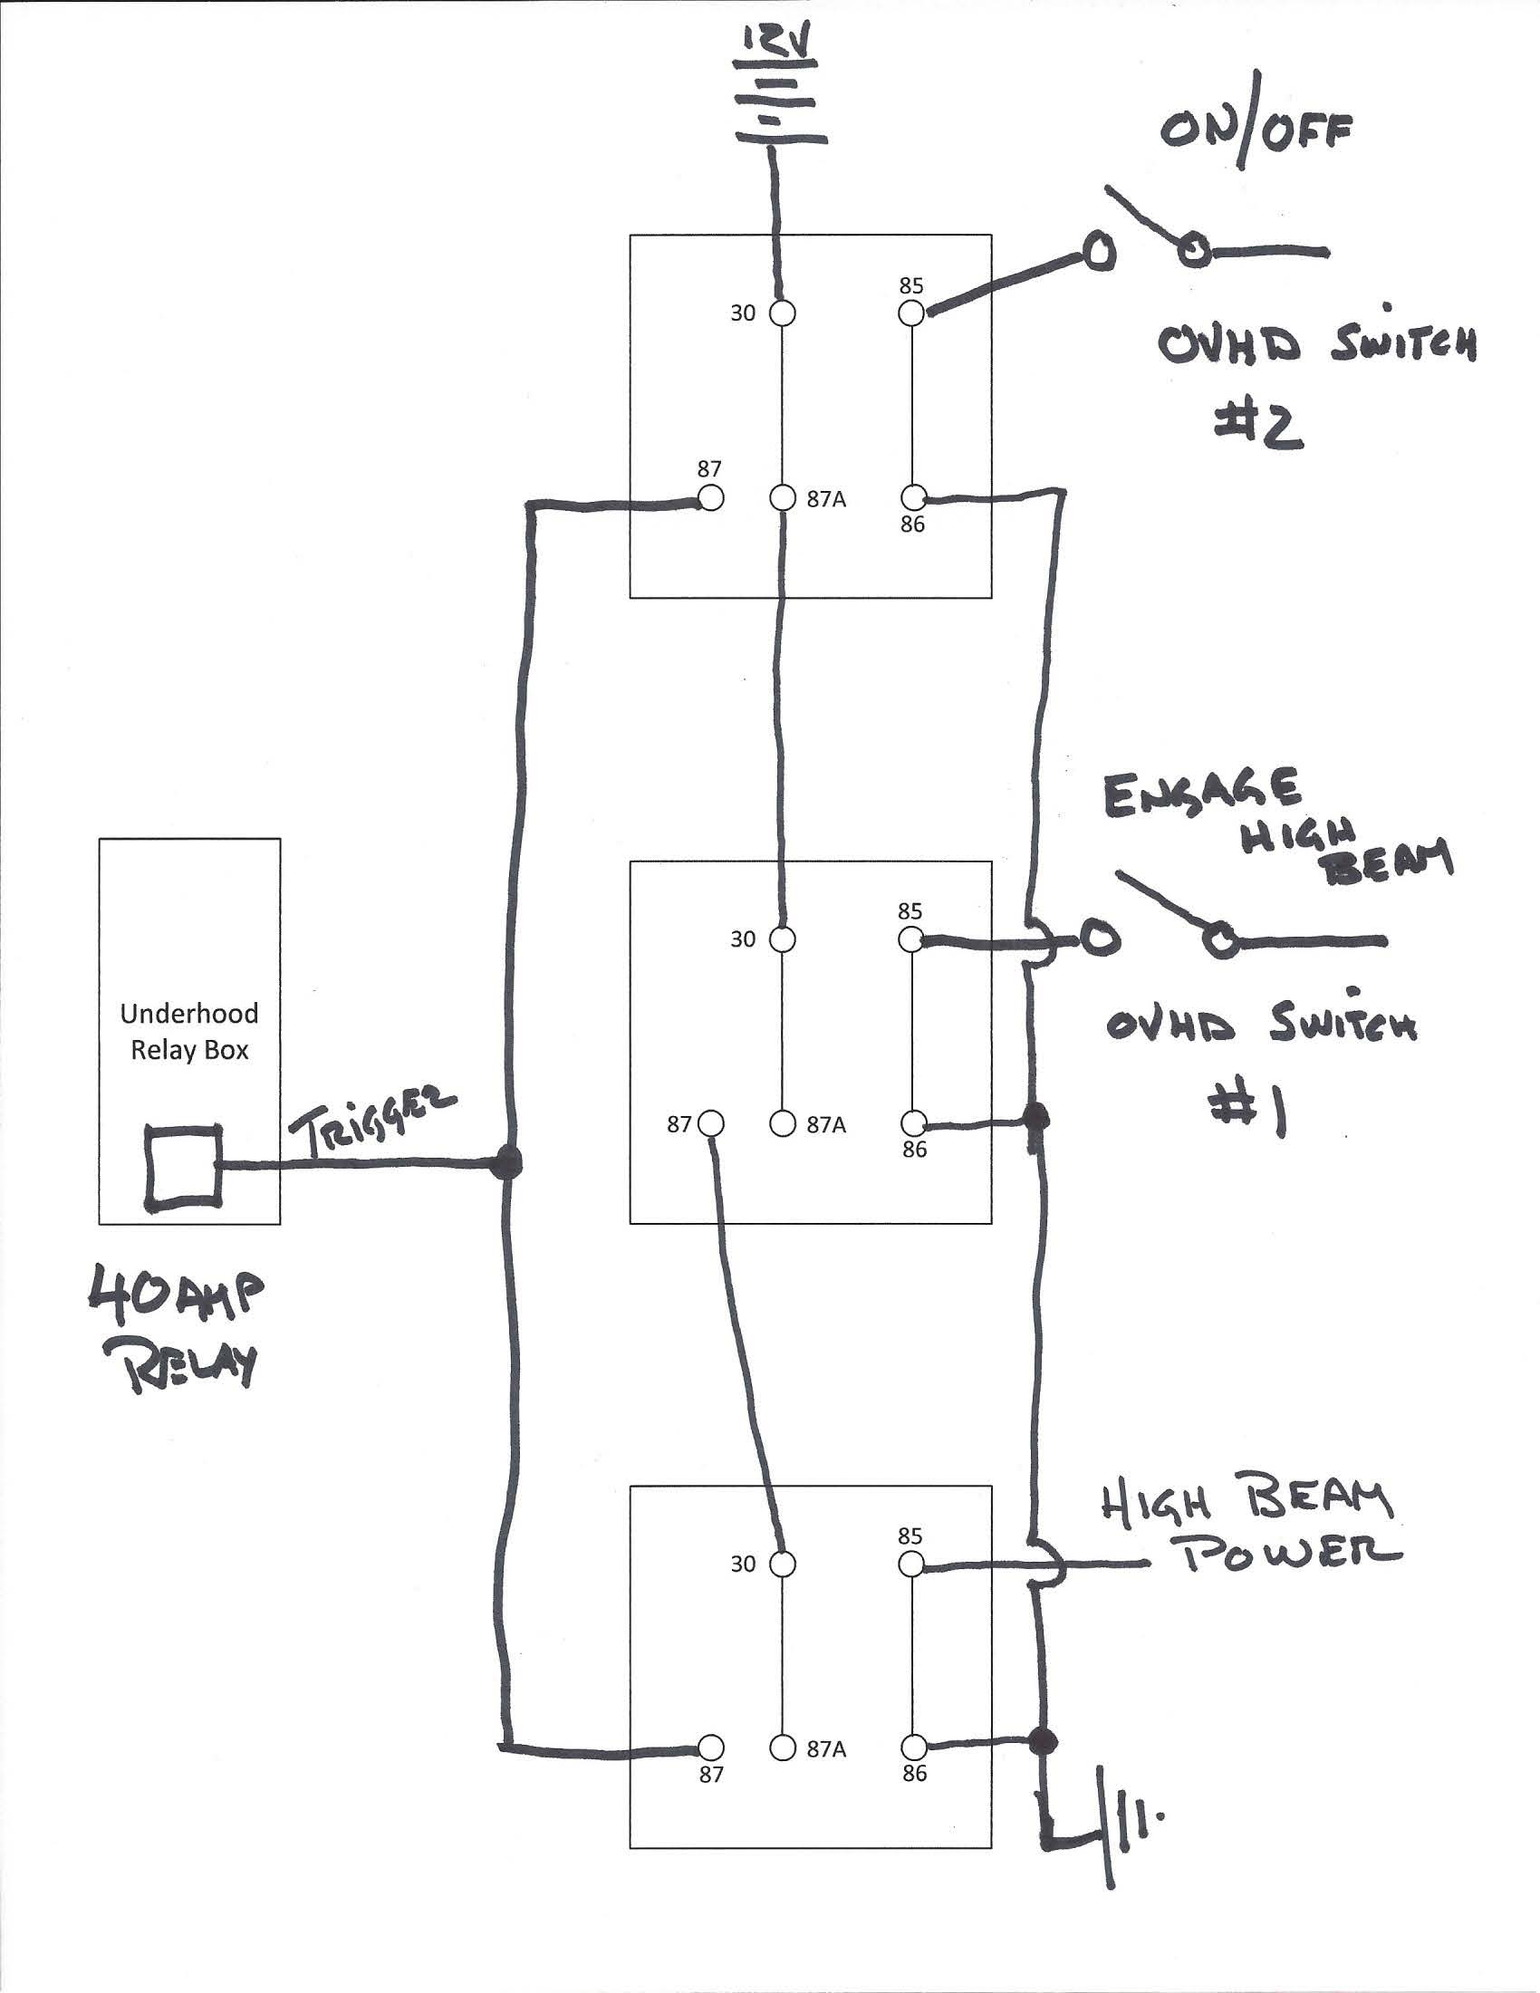 Wiring Diagram Ford Super Duty Upfitter Switch